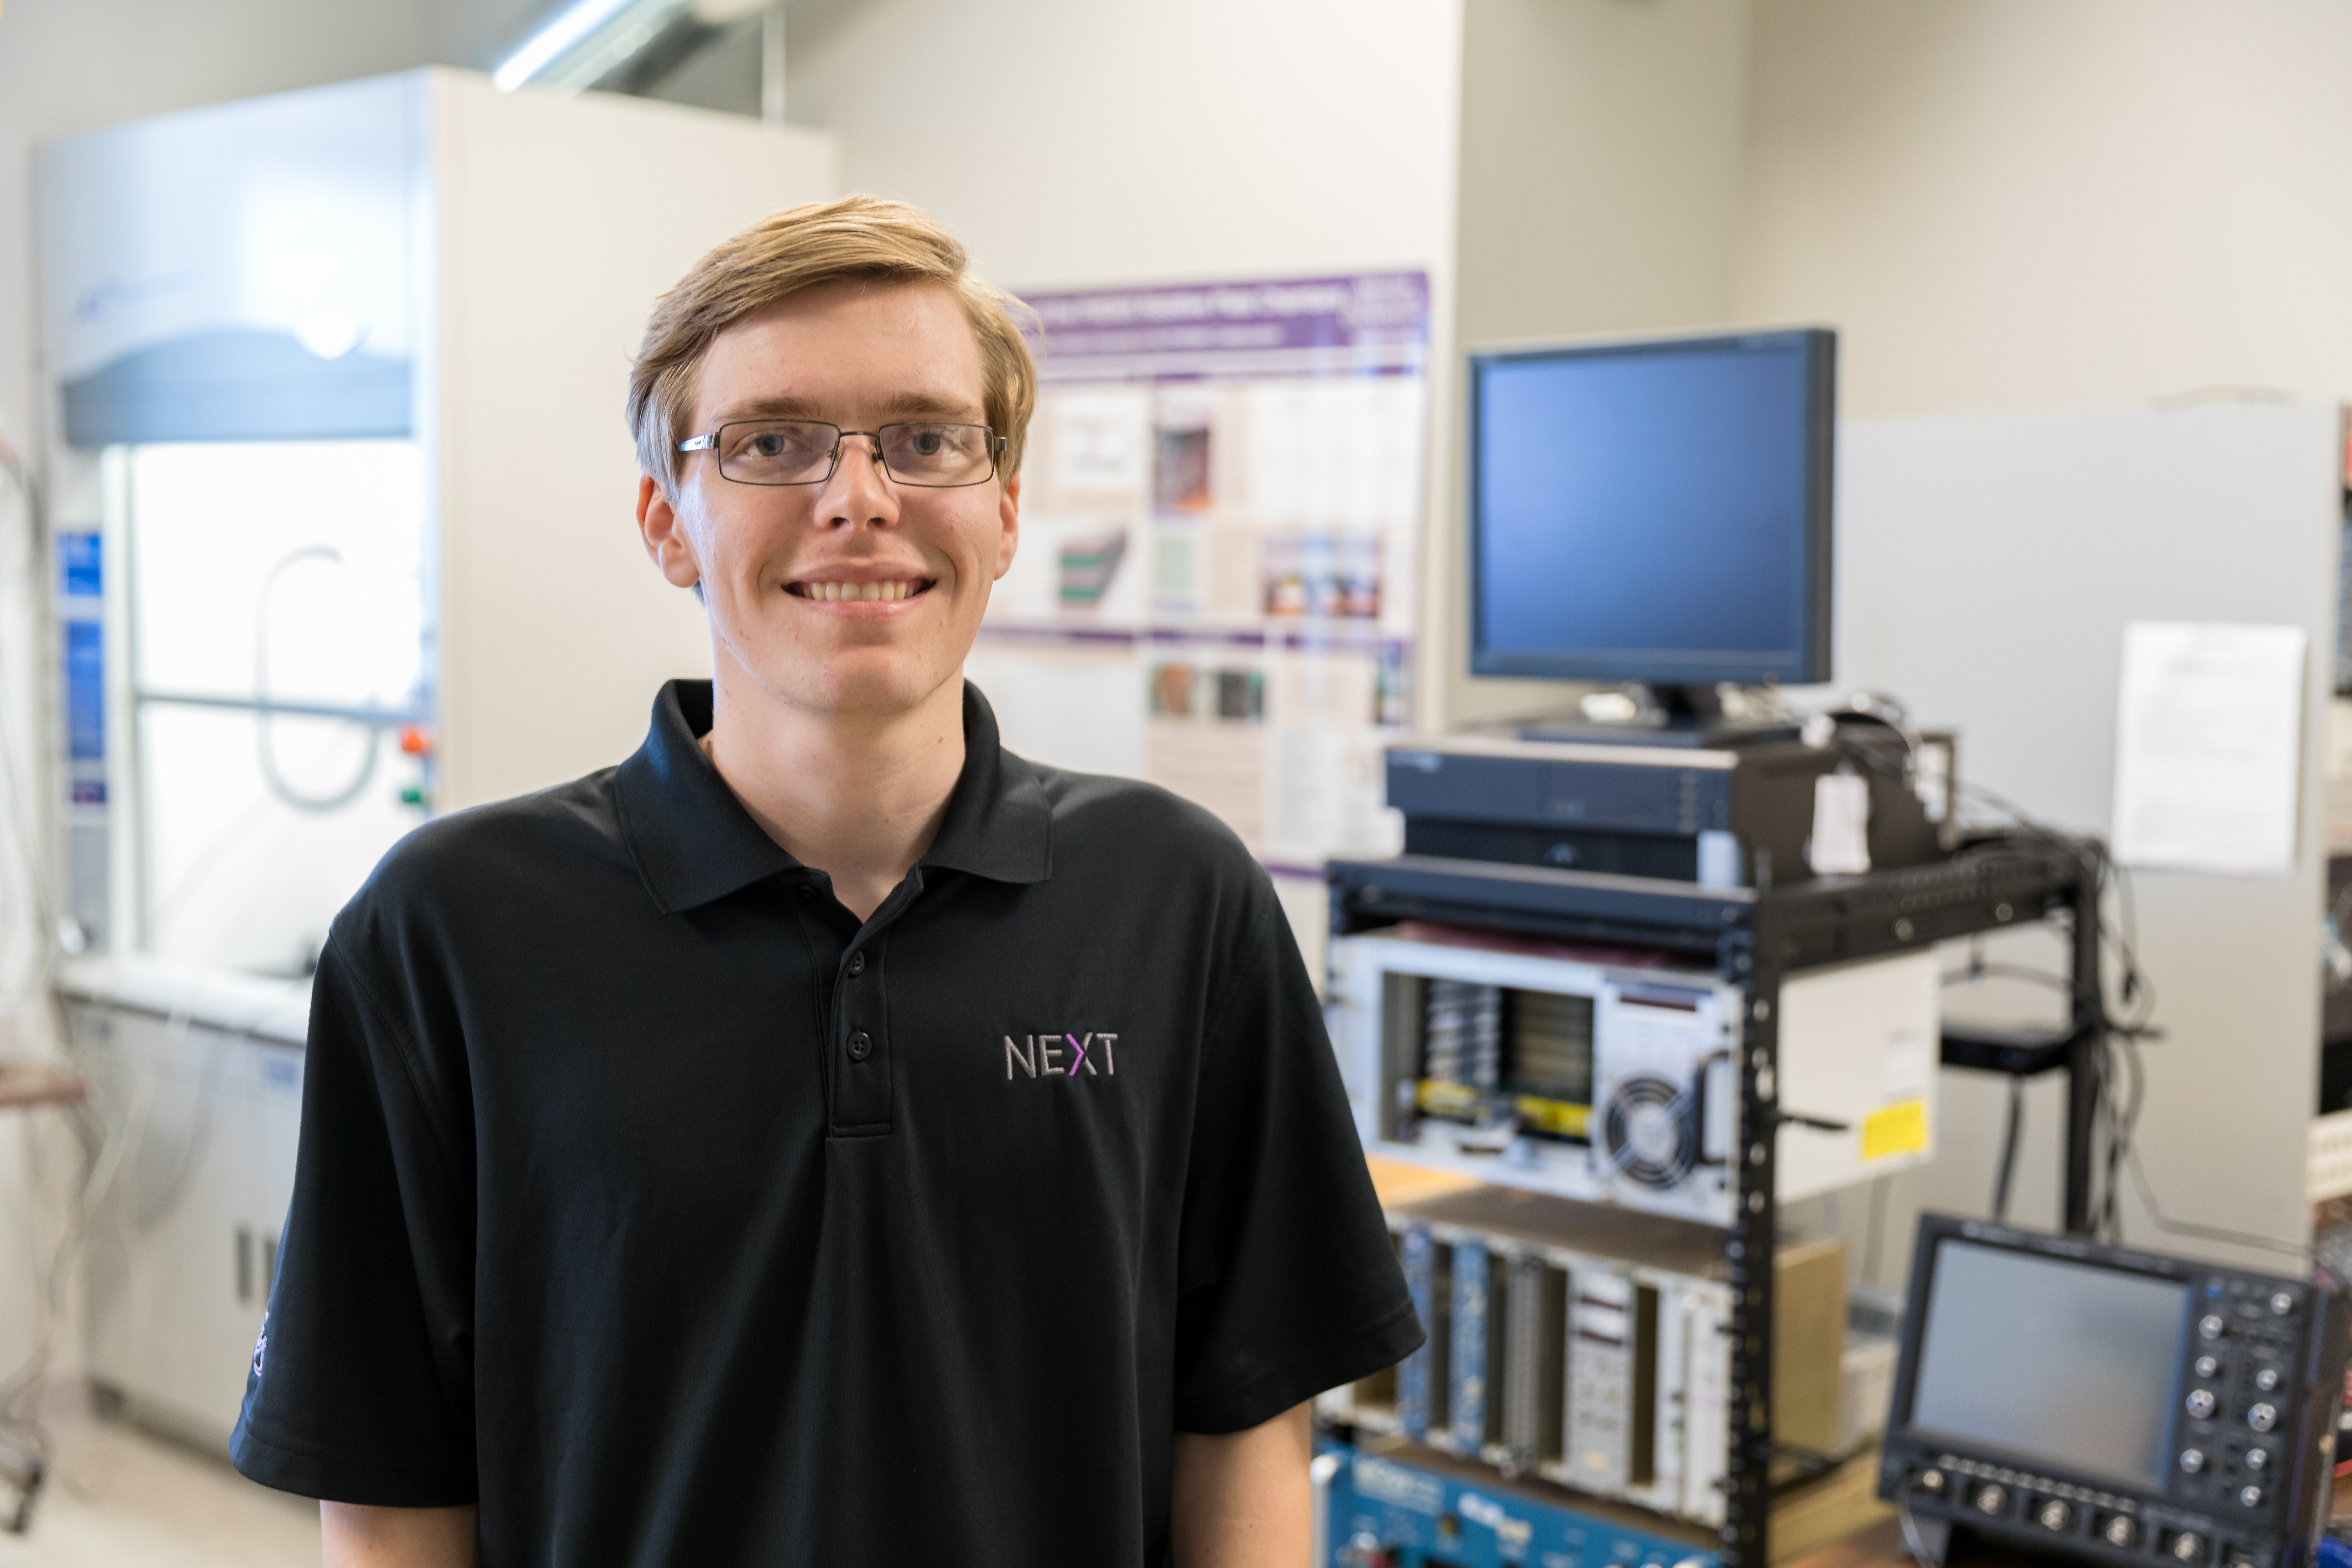 Caleb Hicks has conducted research at Fermi National Accelerator Laboratory near Chicago, Los Alamos National Laboratory in New Mexico, and now ACU's new Nuclear Energy eXperimental Testing (NEXT) Lab.